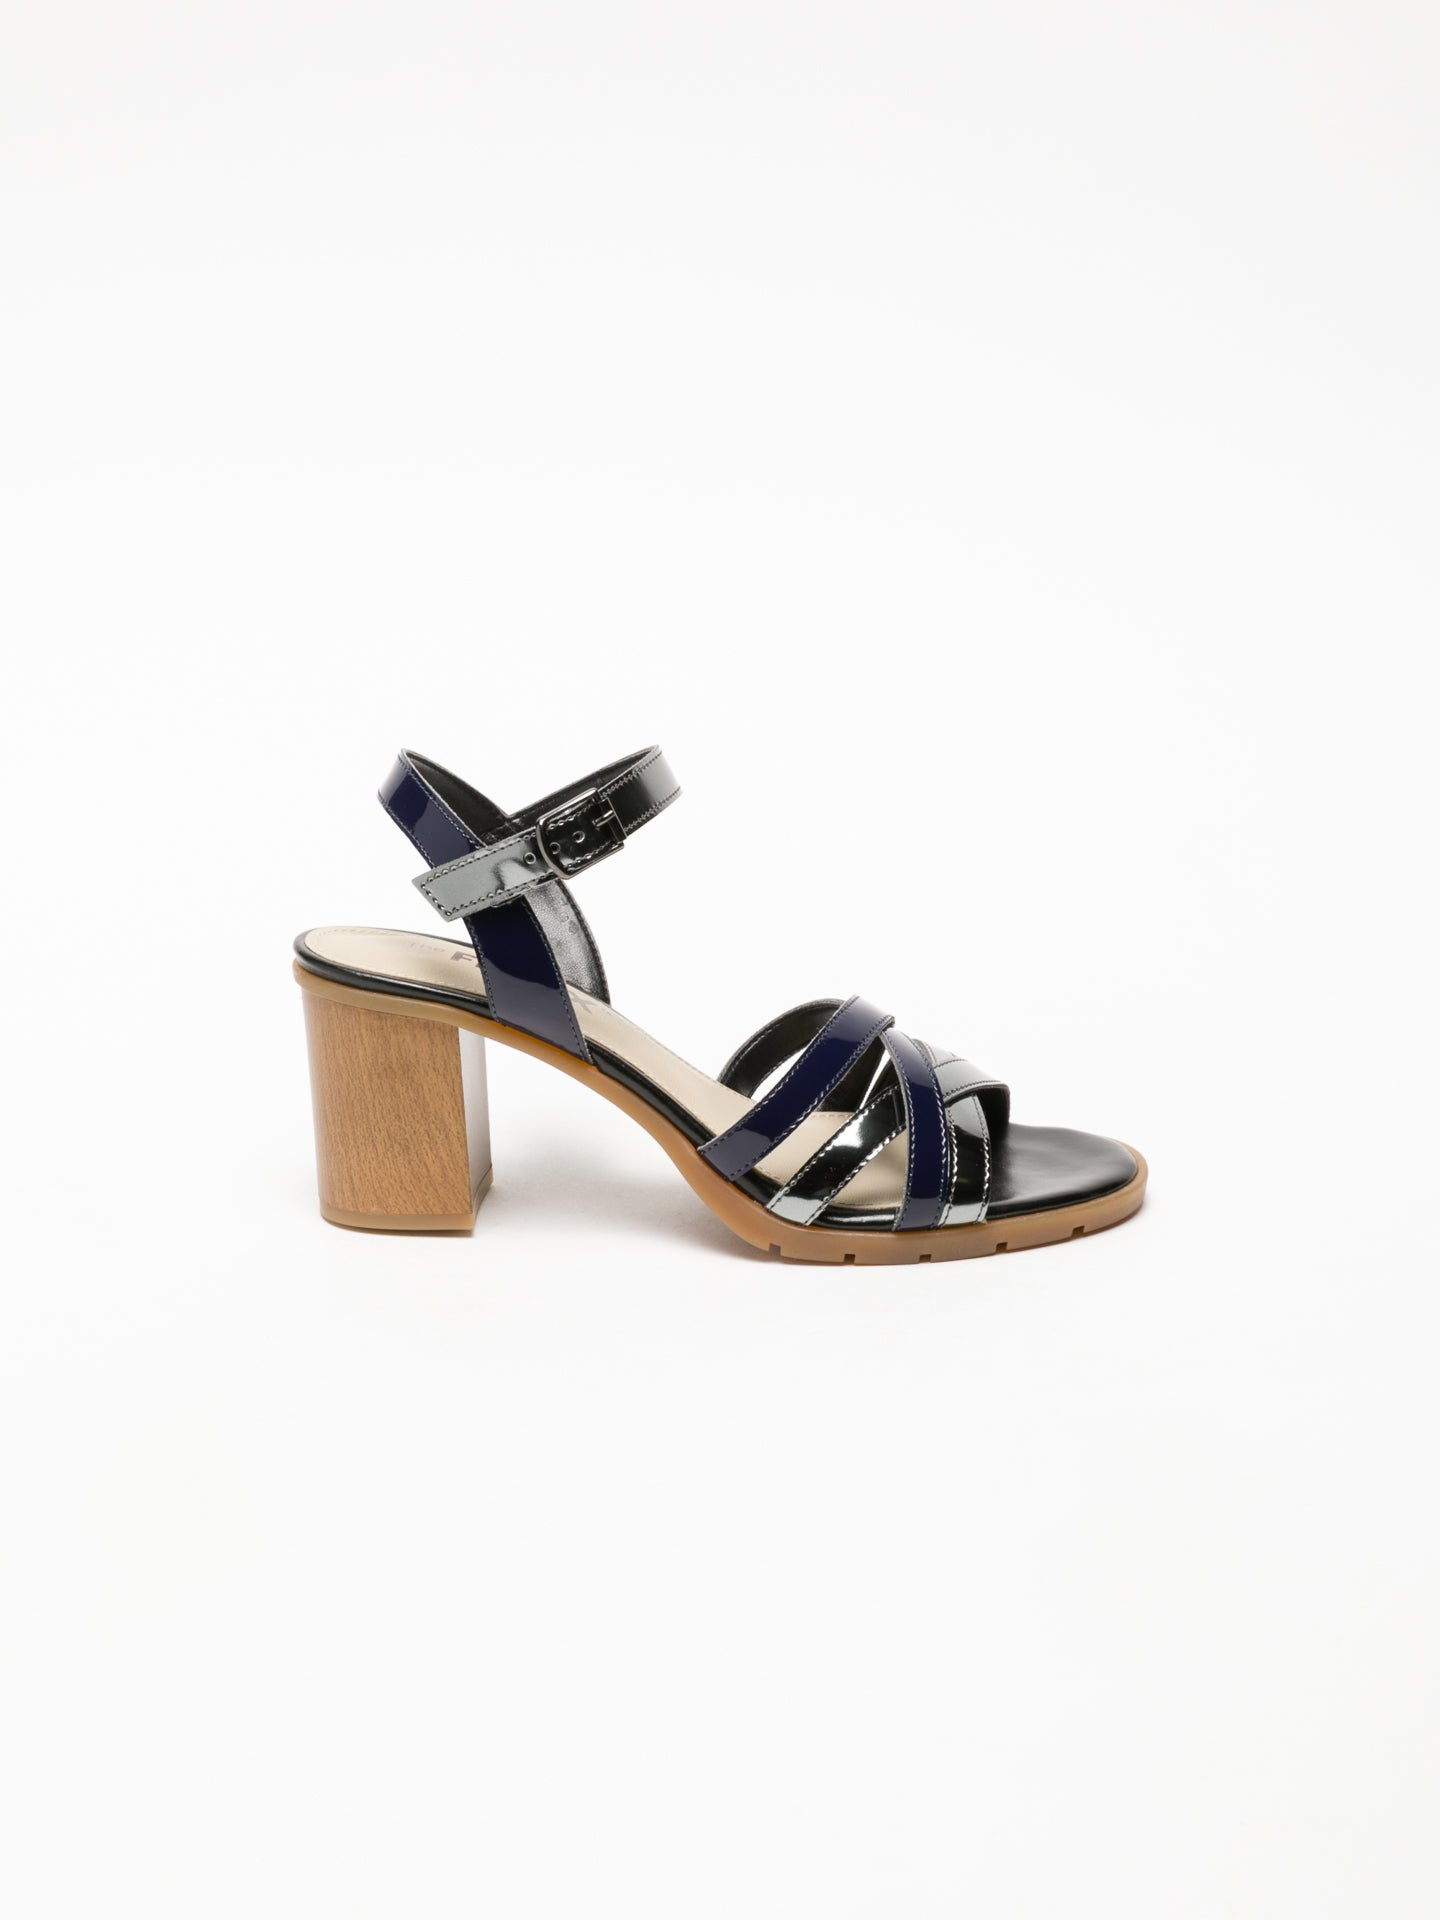 The Flexx Black Buckle Sandals